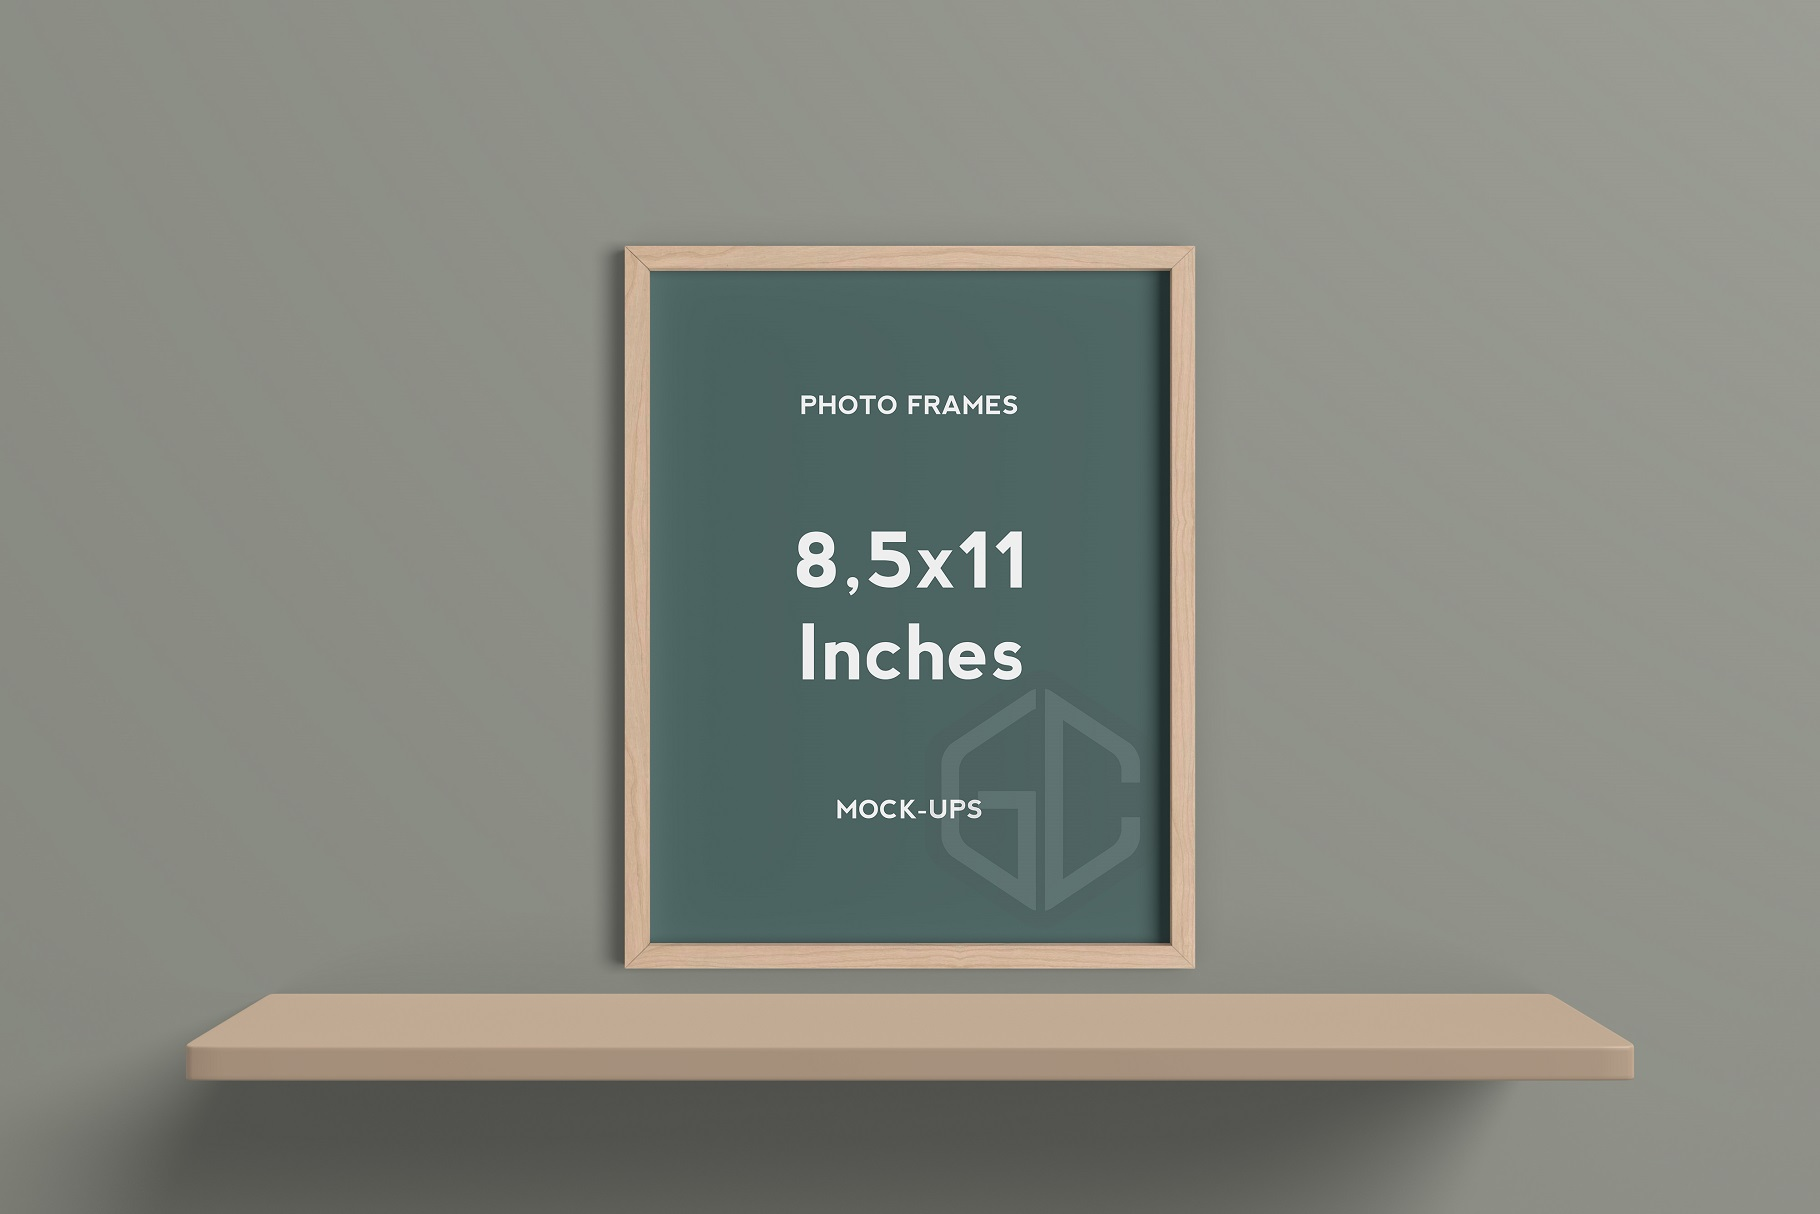 8,5x11 Inches Frame Mockup example image 5